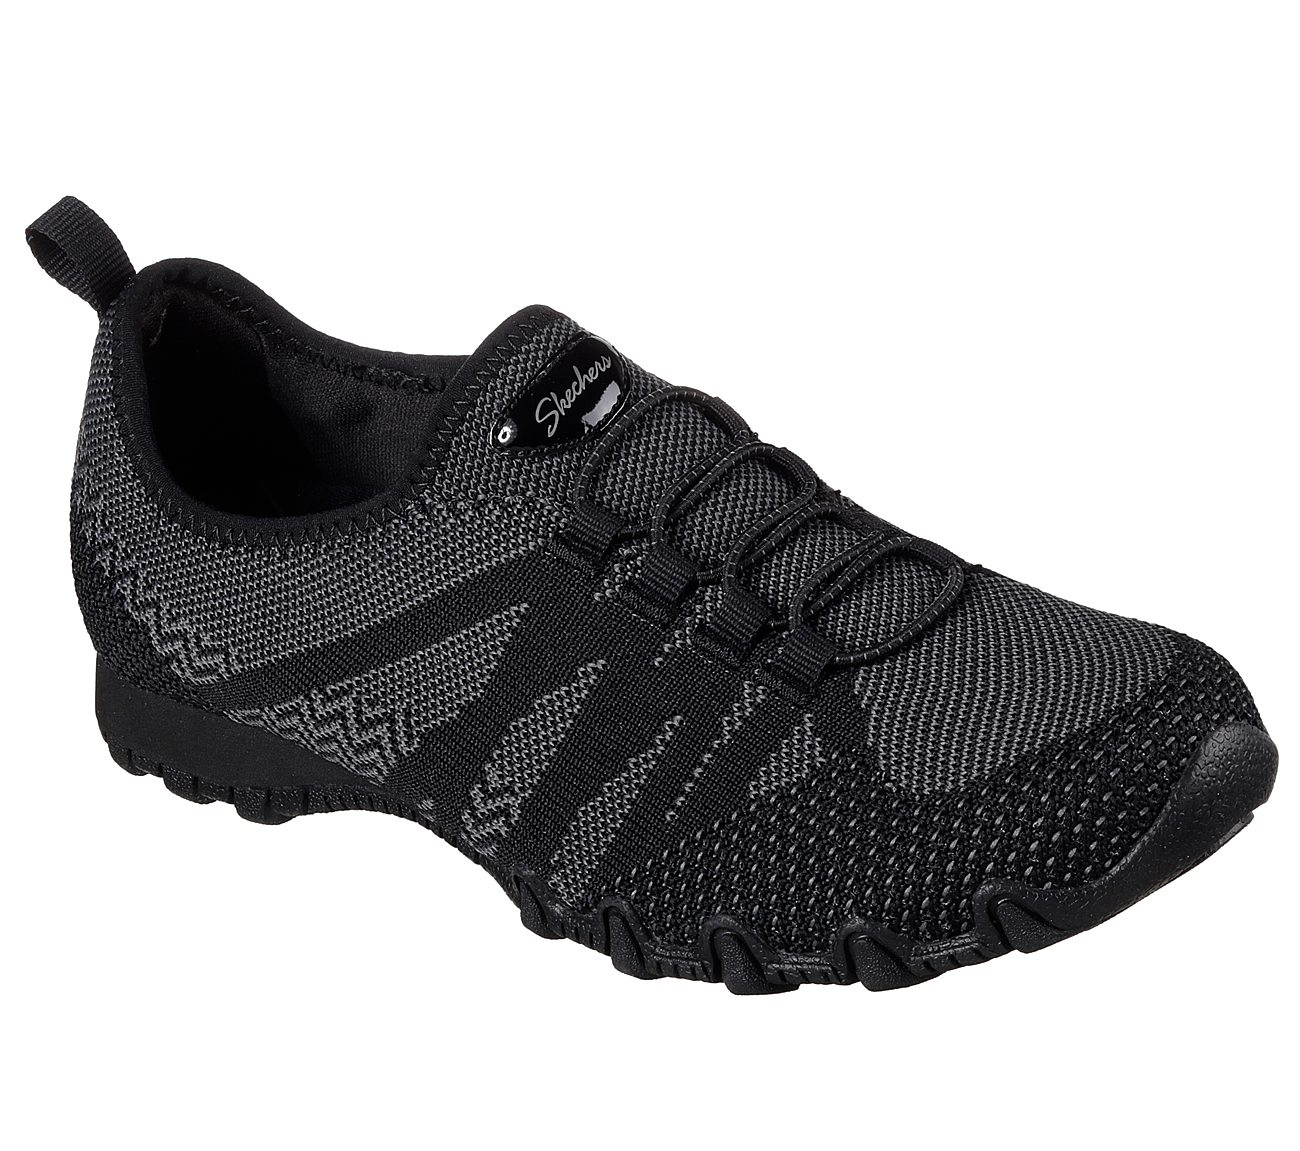 Skechers Relaxed Fit Bikers Get With Knit Sneaker (Women's) BjDHxgA